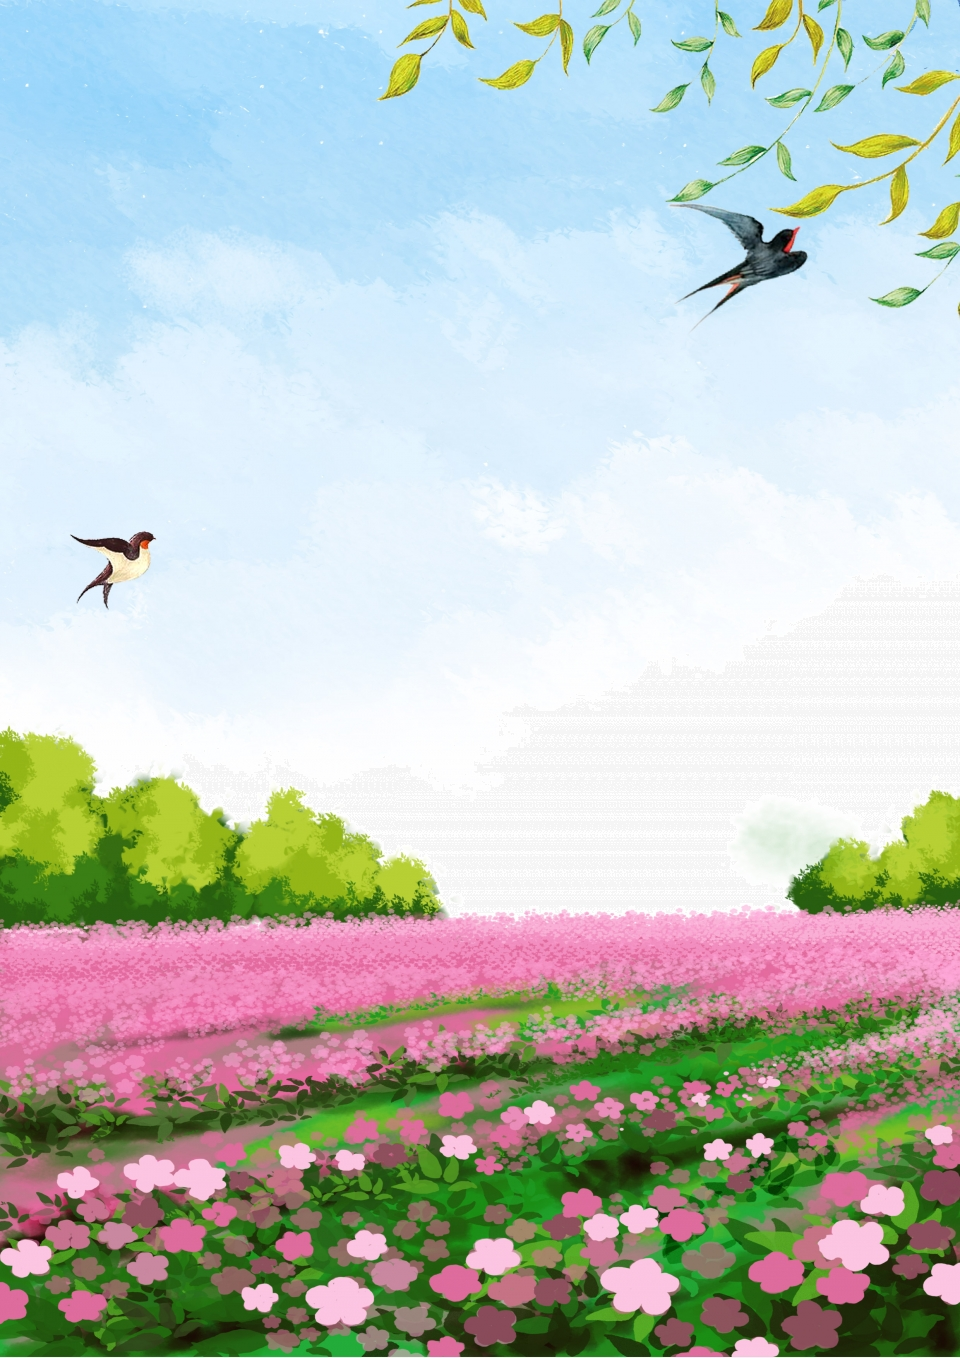 Spring Equinox Spring Flowers Field Background Illustration Spring Equinox Spring Flower Field Background Image For Free Download